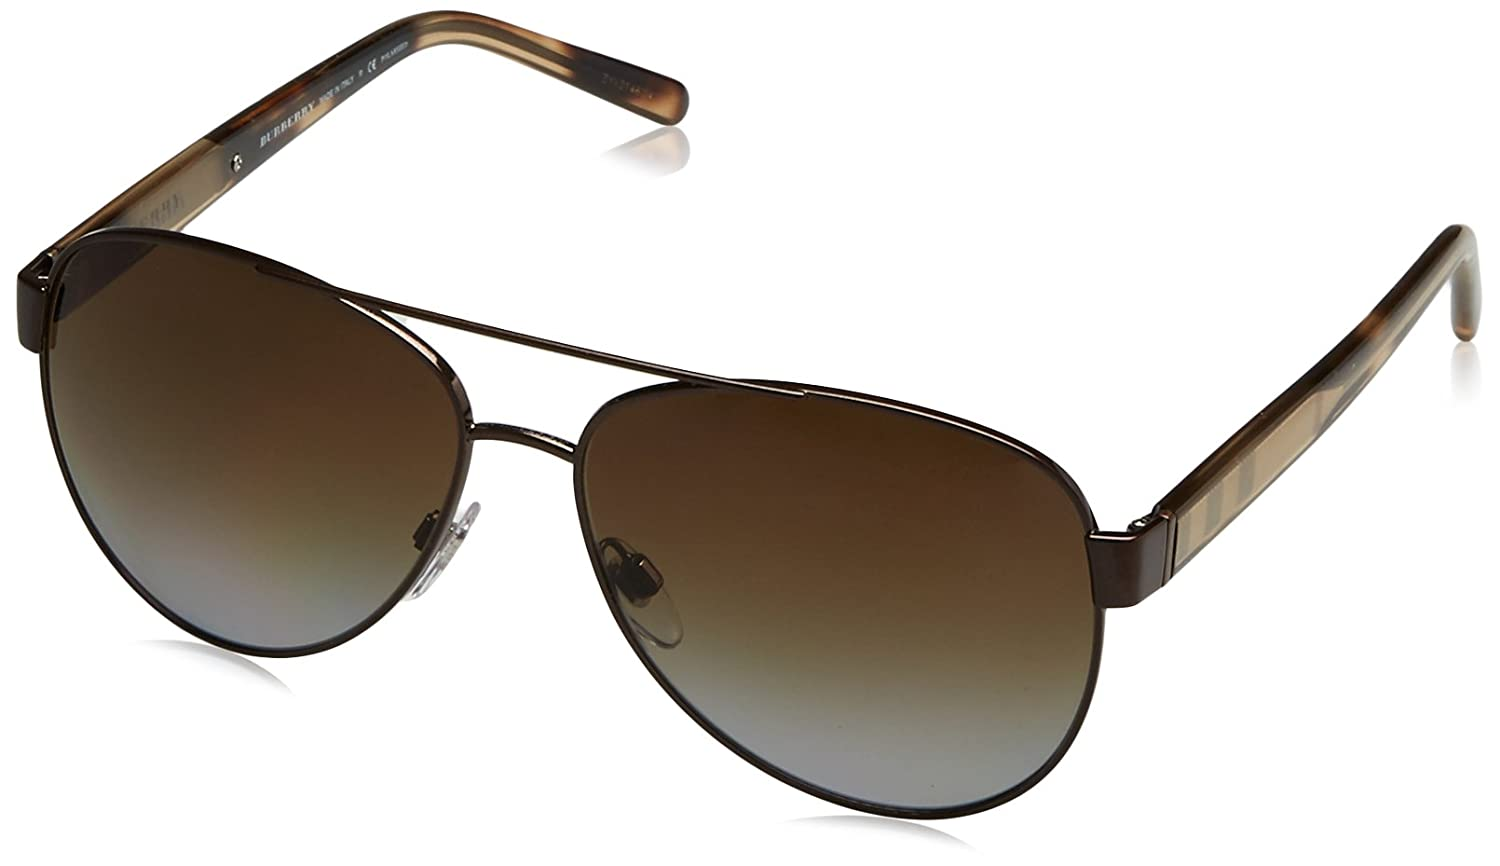 5b2cdca0a43 Amazon.com  Burberry Women s BE3084 Sunglasses Brushed Brown Polar Brown  Gradient 60mm  Burberry  Clothing